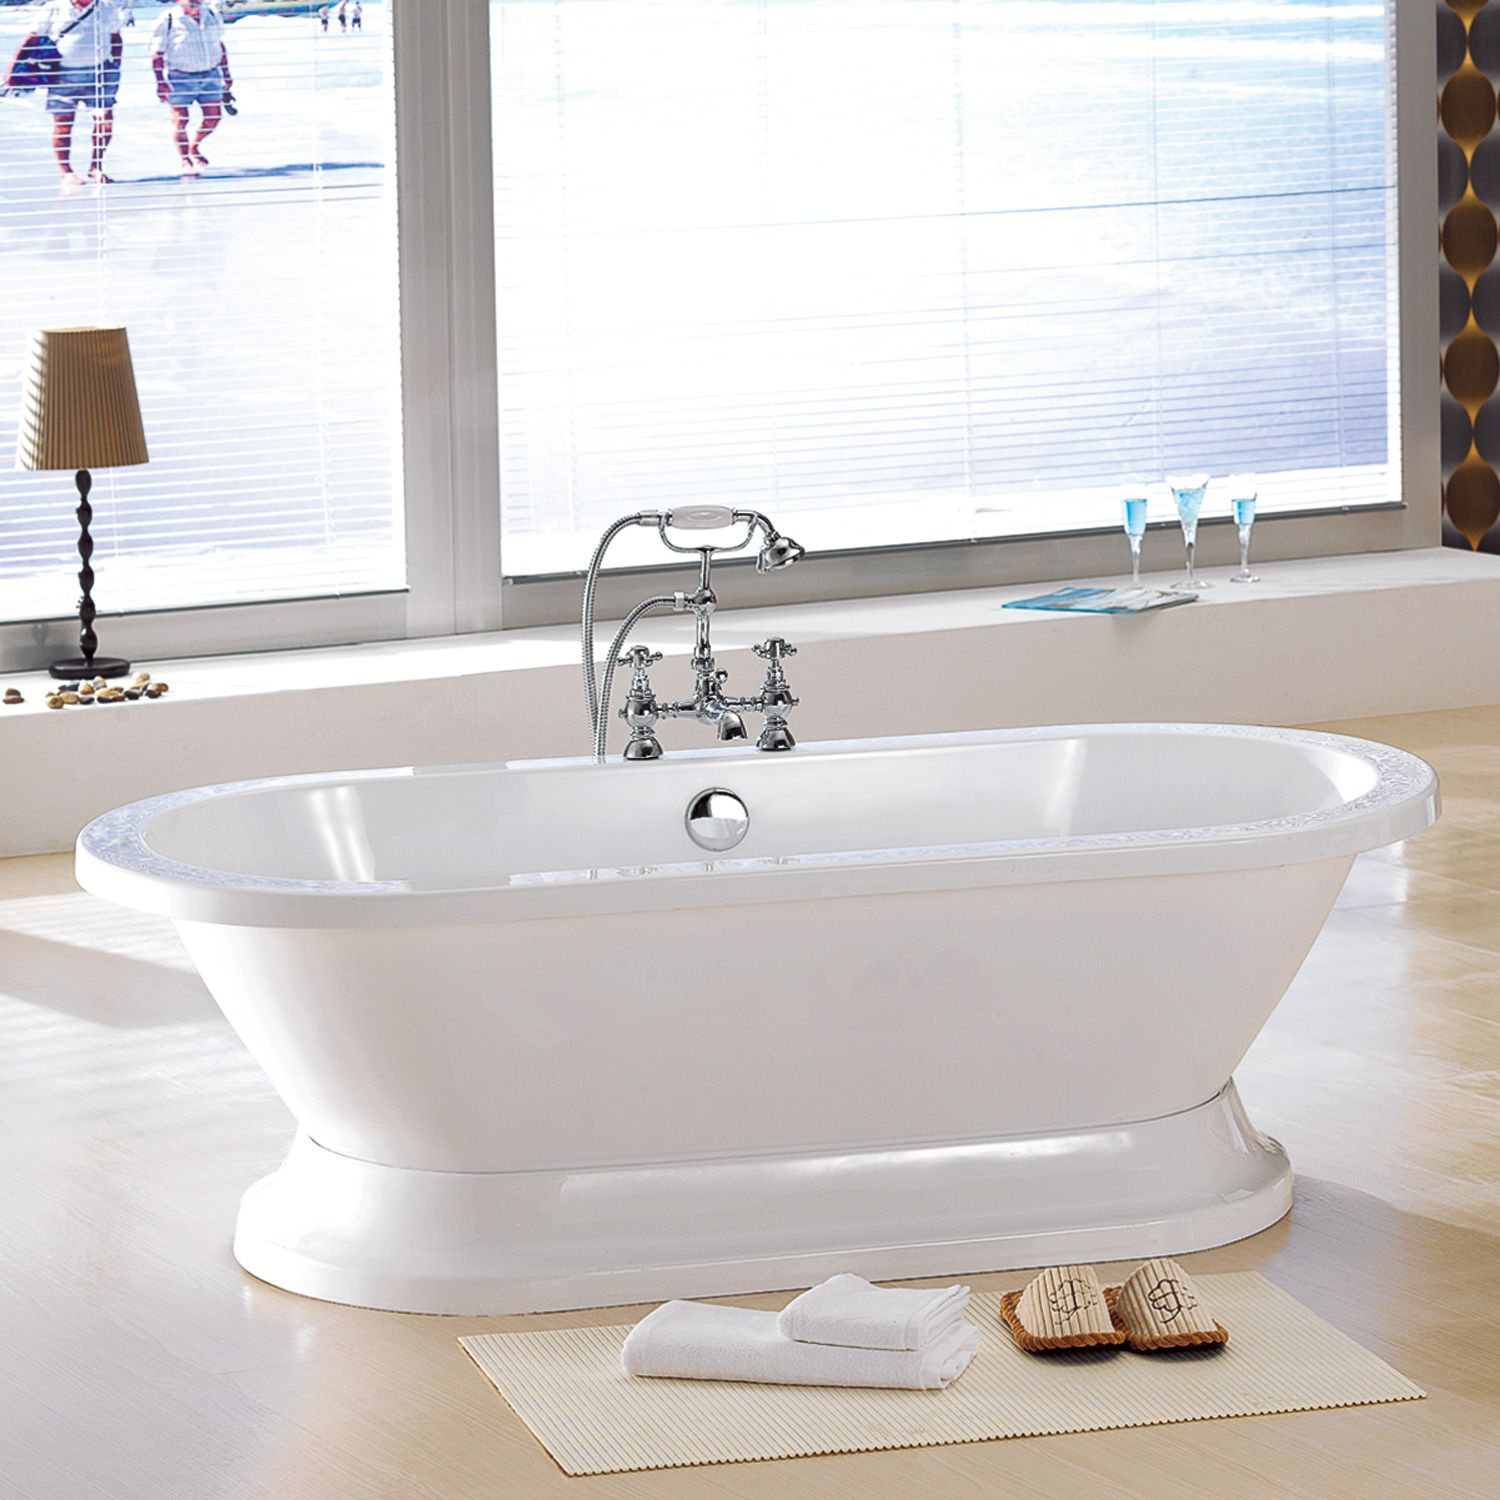 Famous Bath Vanities New Jersey Big Bathroom Design Tools Online Free Shaped Bathroom Tempered Glass Vessel Sink Vanity Faucet Led Bathroom Globe Light Bulbs Old Ada Bathroom Stall Latches OrangeRoman Bath London Wiki 1000  Images About Bathroom Ideas On Pinterest | Vacation Rentals ..